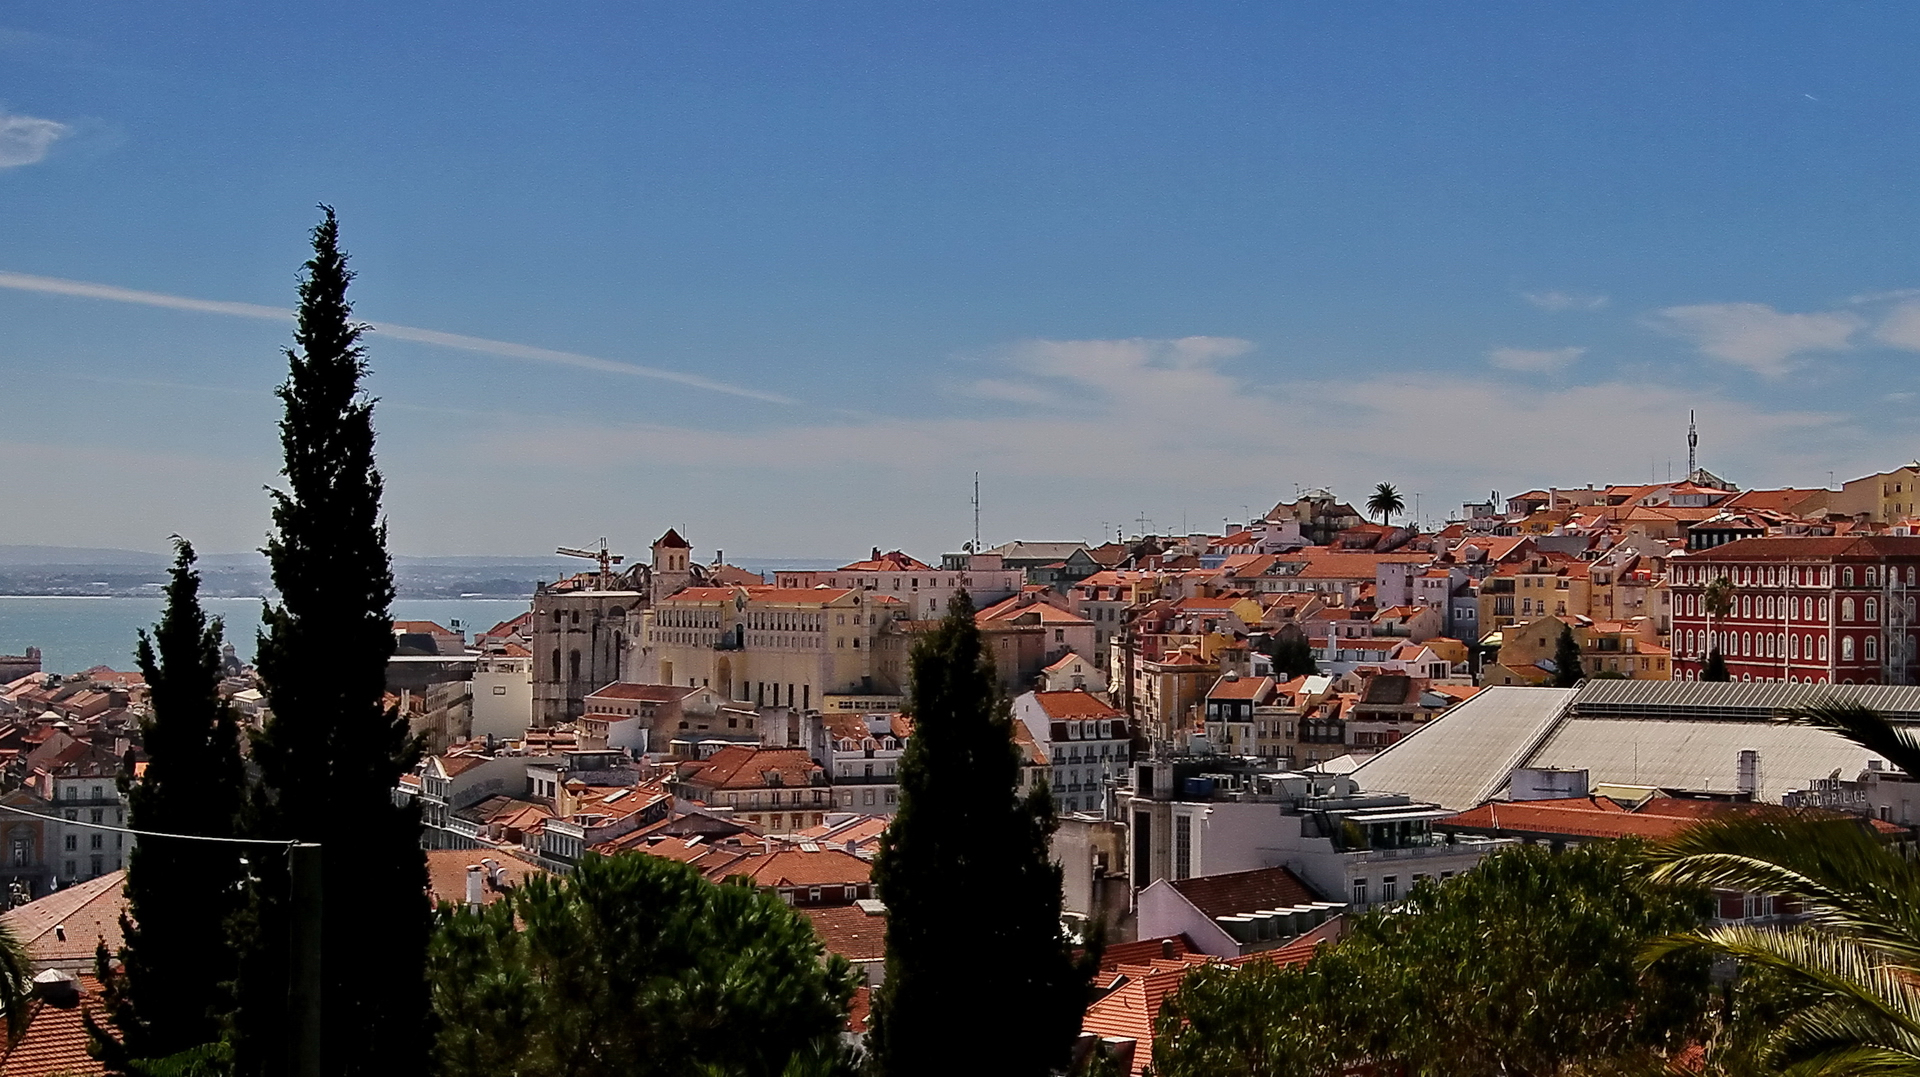 LISBON, stay on top…literally